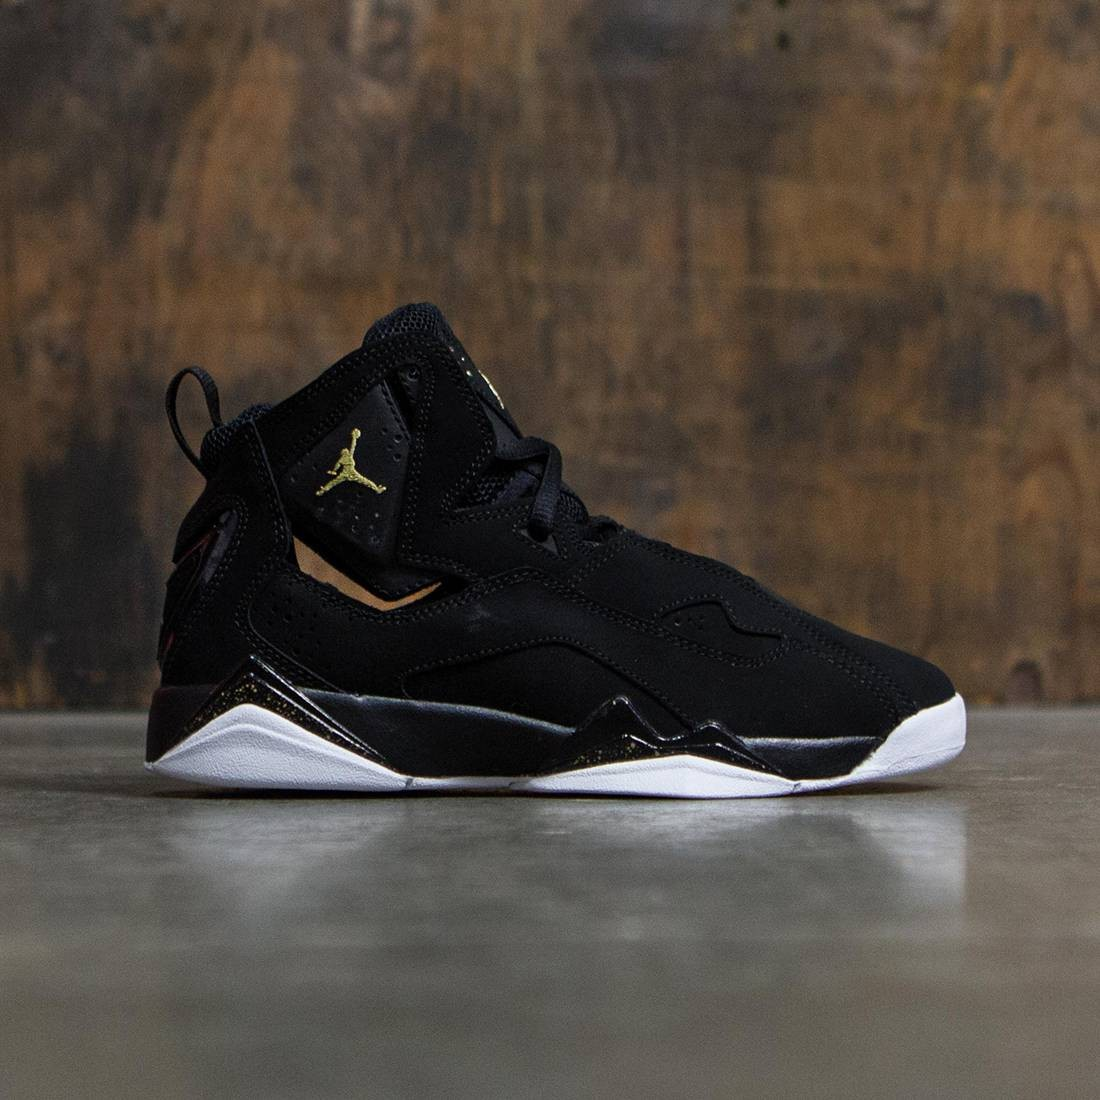 low priced 8f0bd efe60 Jordan Big Kids Jordan True Flight (GS) (black   metallic gold-black-white)